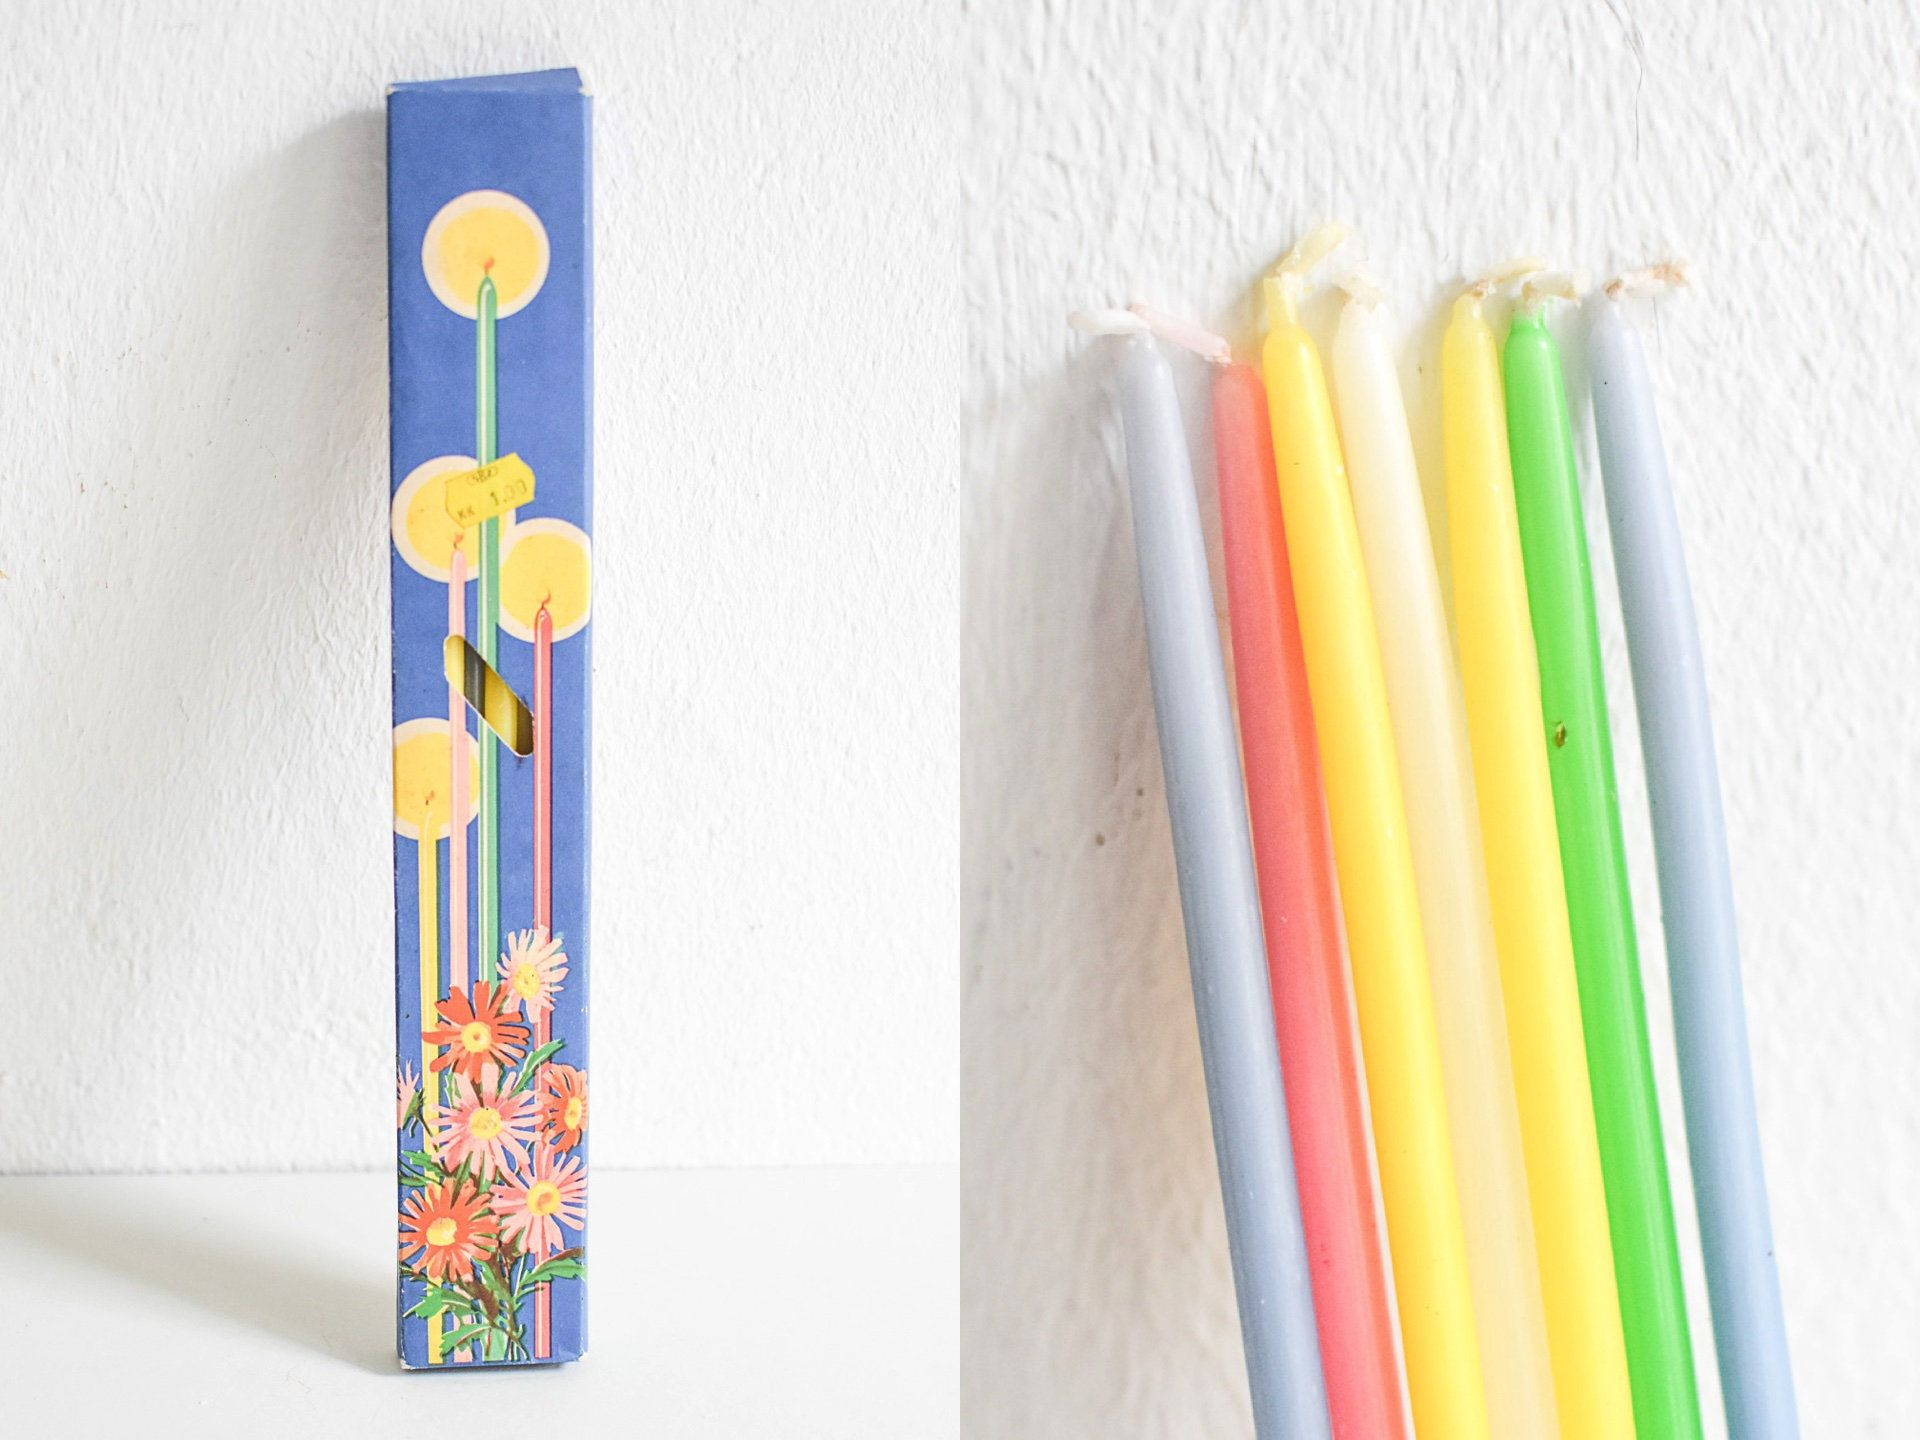 Vintage Candles Long Candles Thin Candles Thin Taper Candles